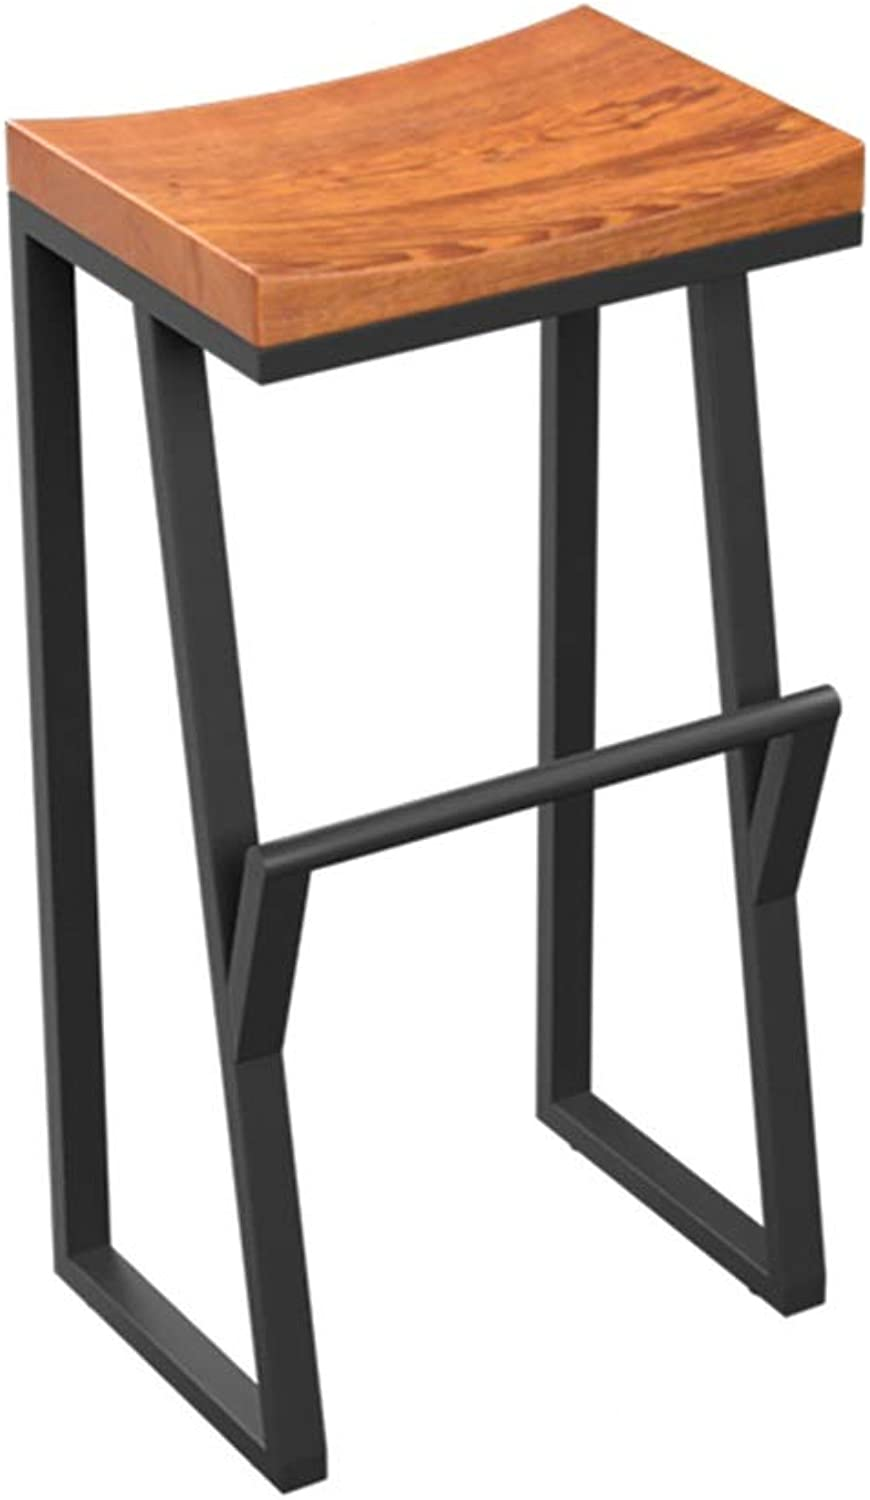 Retro Bar Stool Iron Art High Leg Chairs Solid Wood Seat Designer Creative Counter Stool Sturdy Household Seat 0522A (Size   Seat Height 75cm)